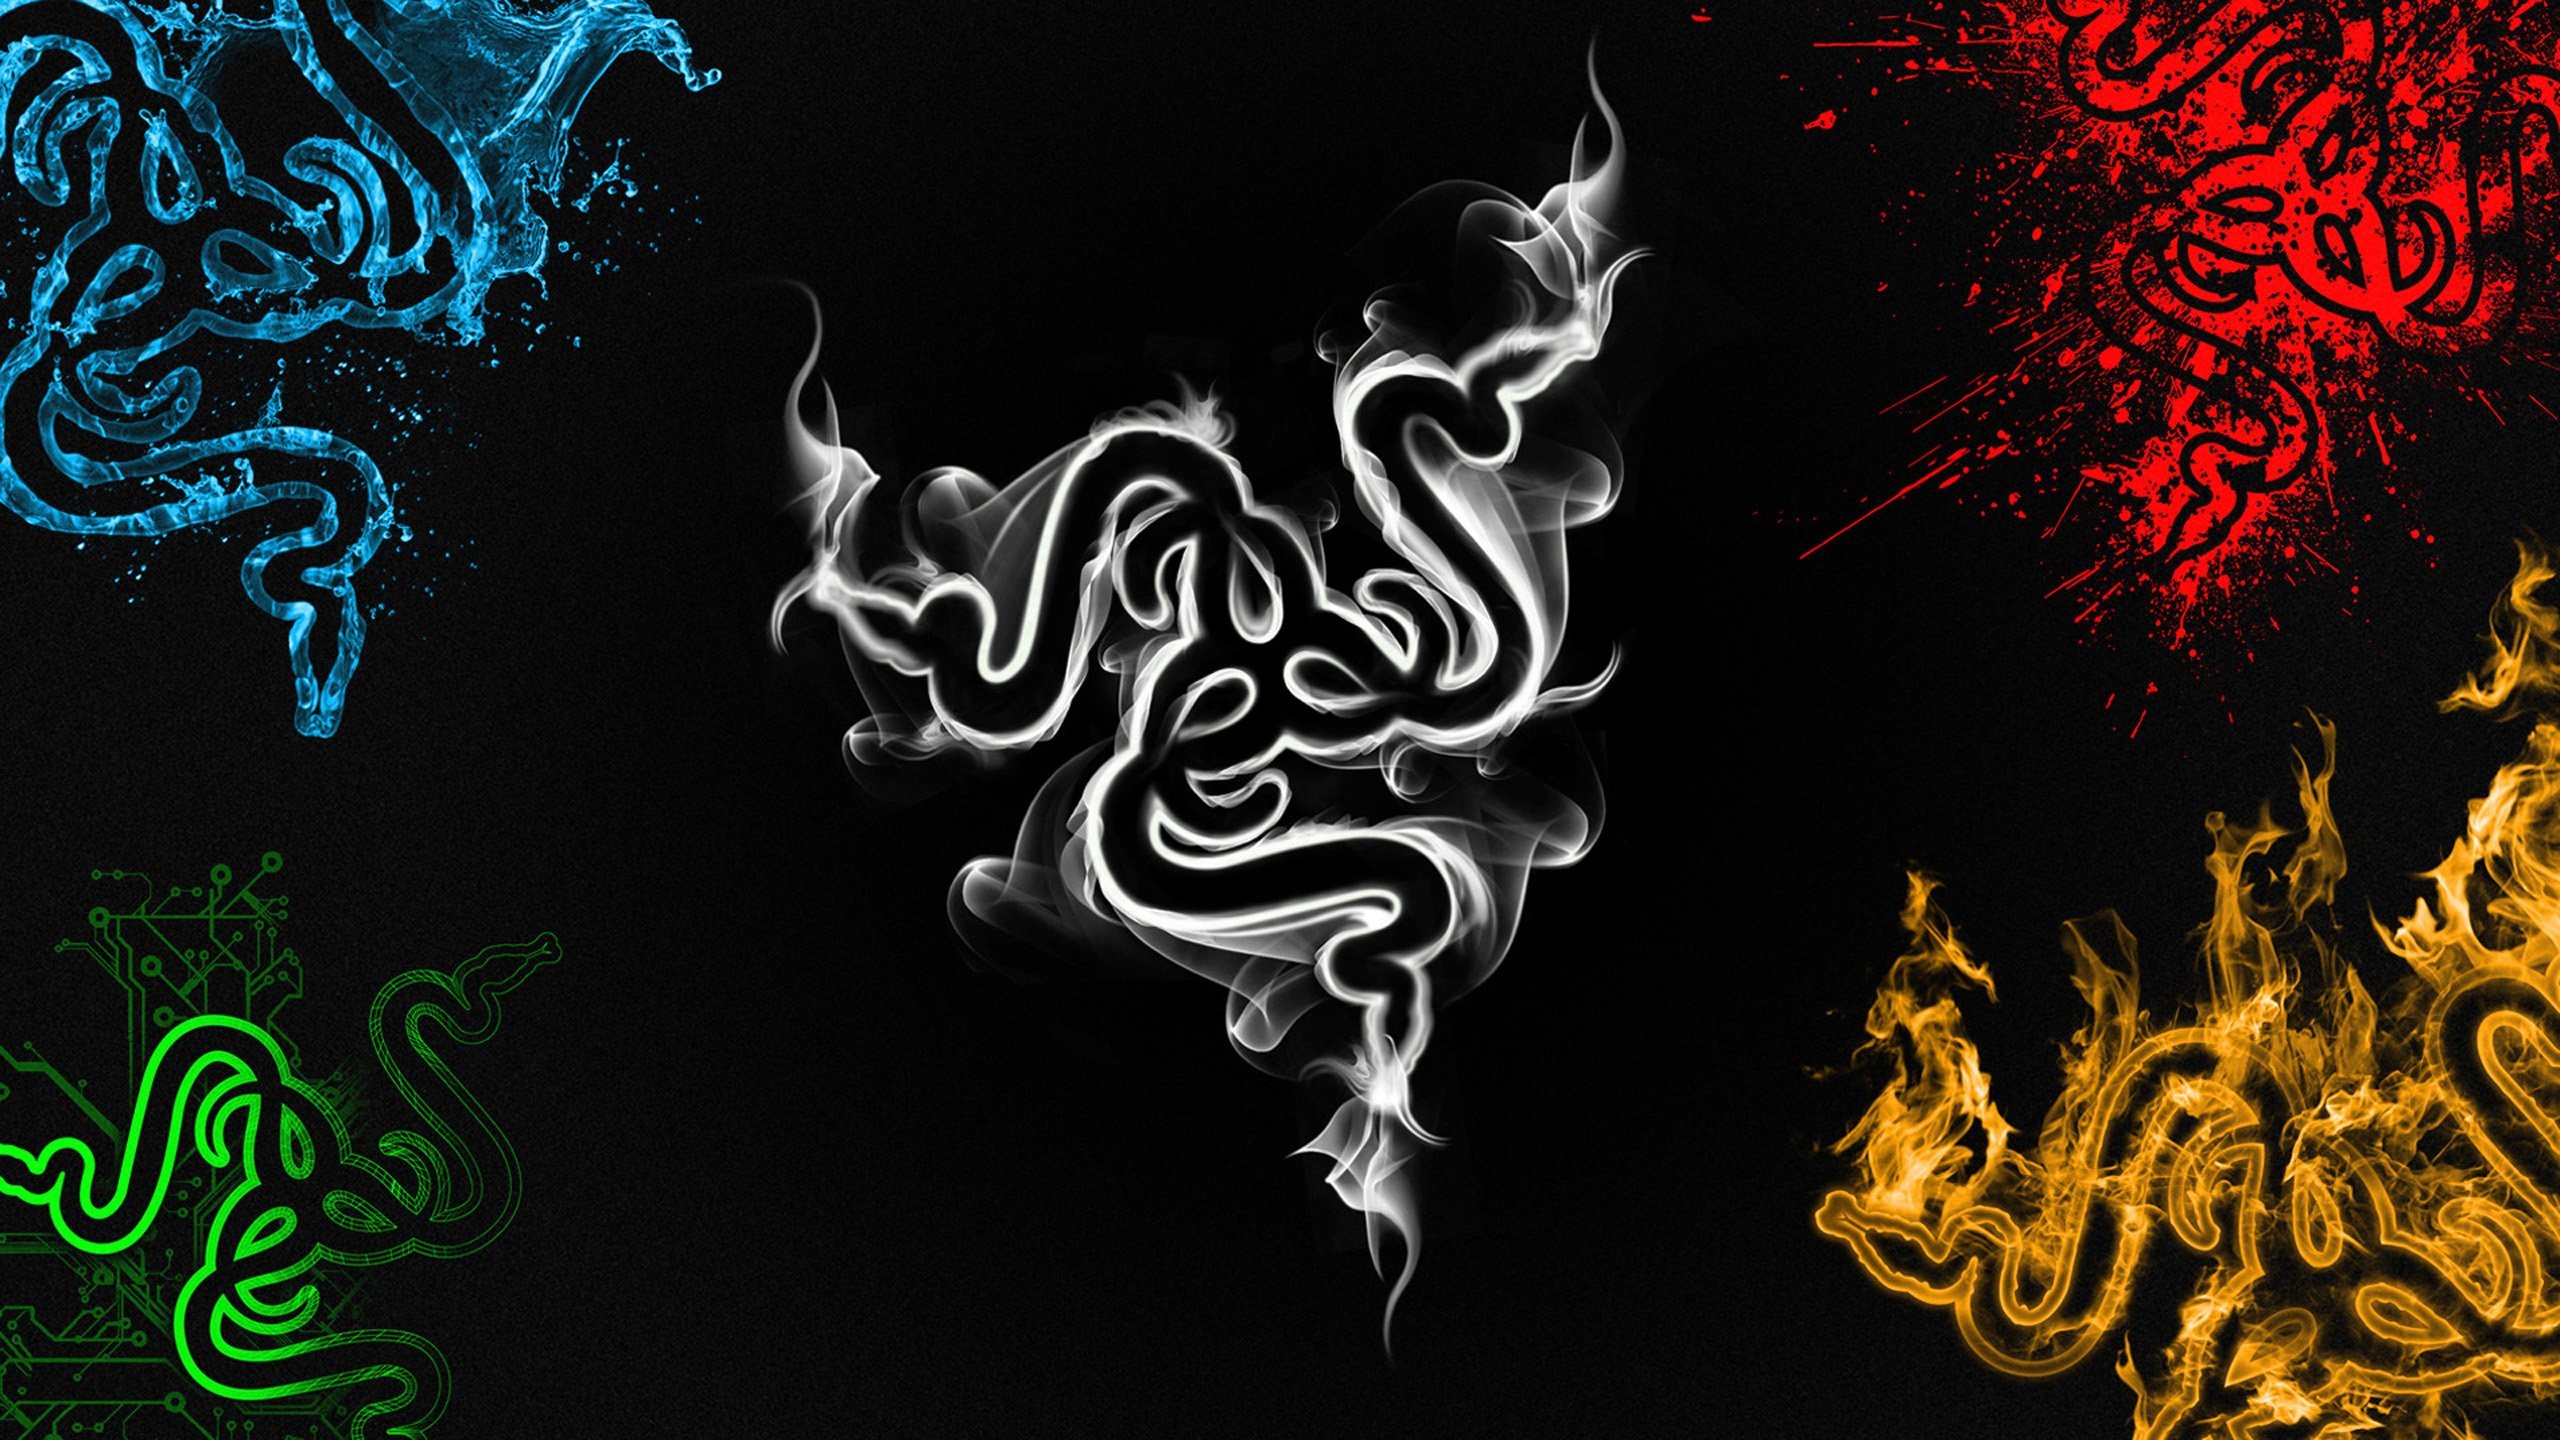 Red razer wallpaper hd wallpapersafari